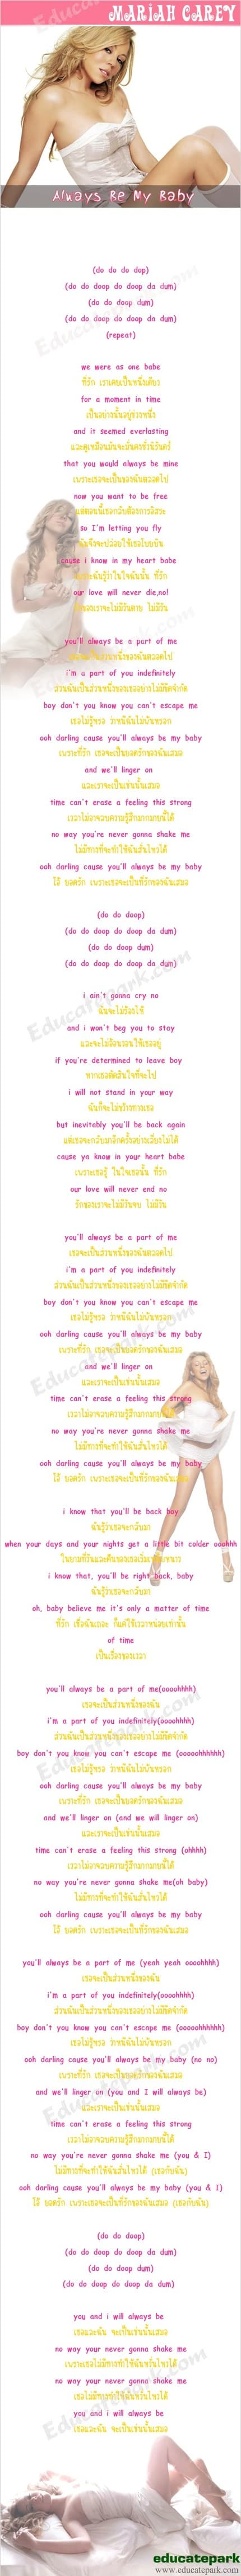 แปลเพลง Always Be My Baby - Mariah Carey